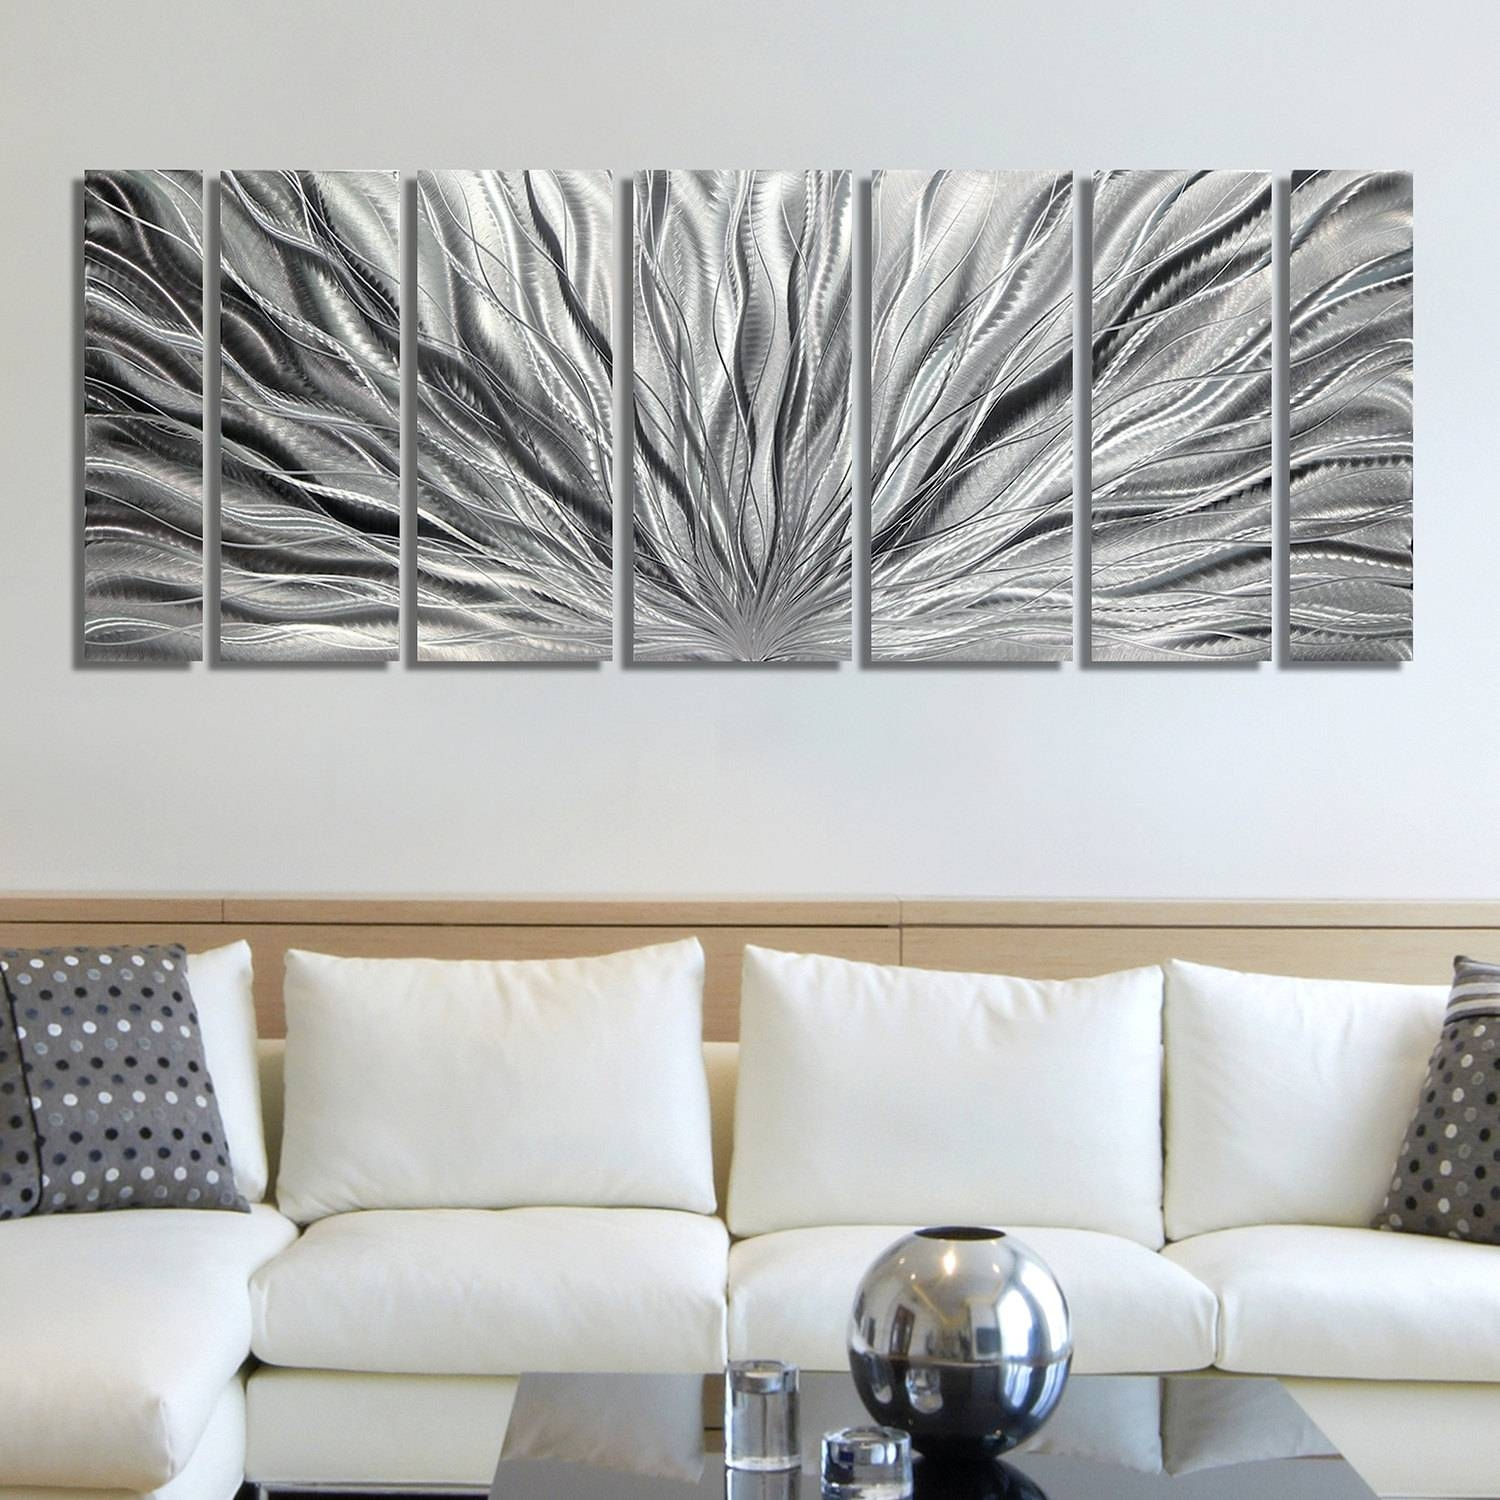 Sale Large Multi Panel Metal Wall Art In All Silver Intended For 2018 Silver Metal Wall Art (View 15 of 20)